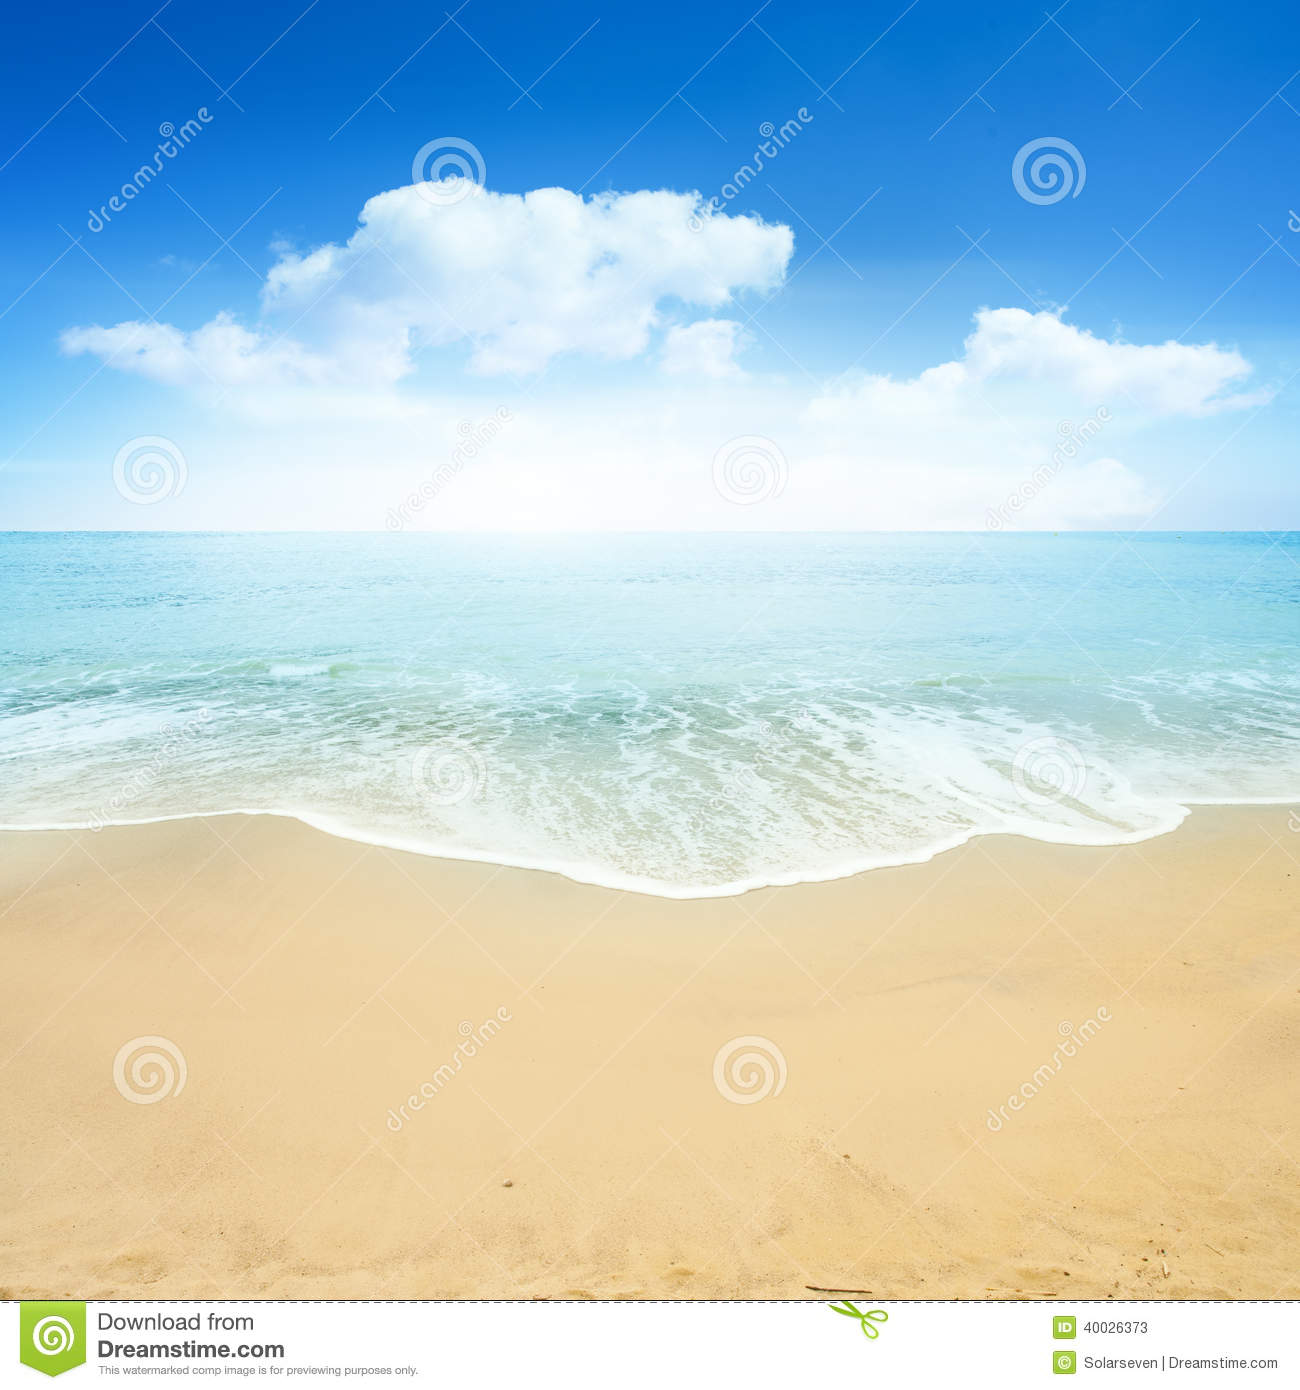 Beautiful Summer Beach Stock Image. Image Of Travel, Warm